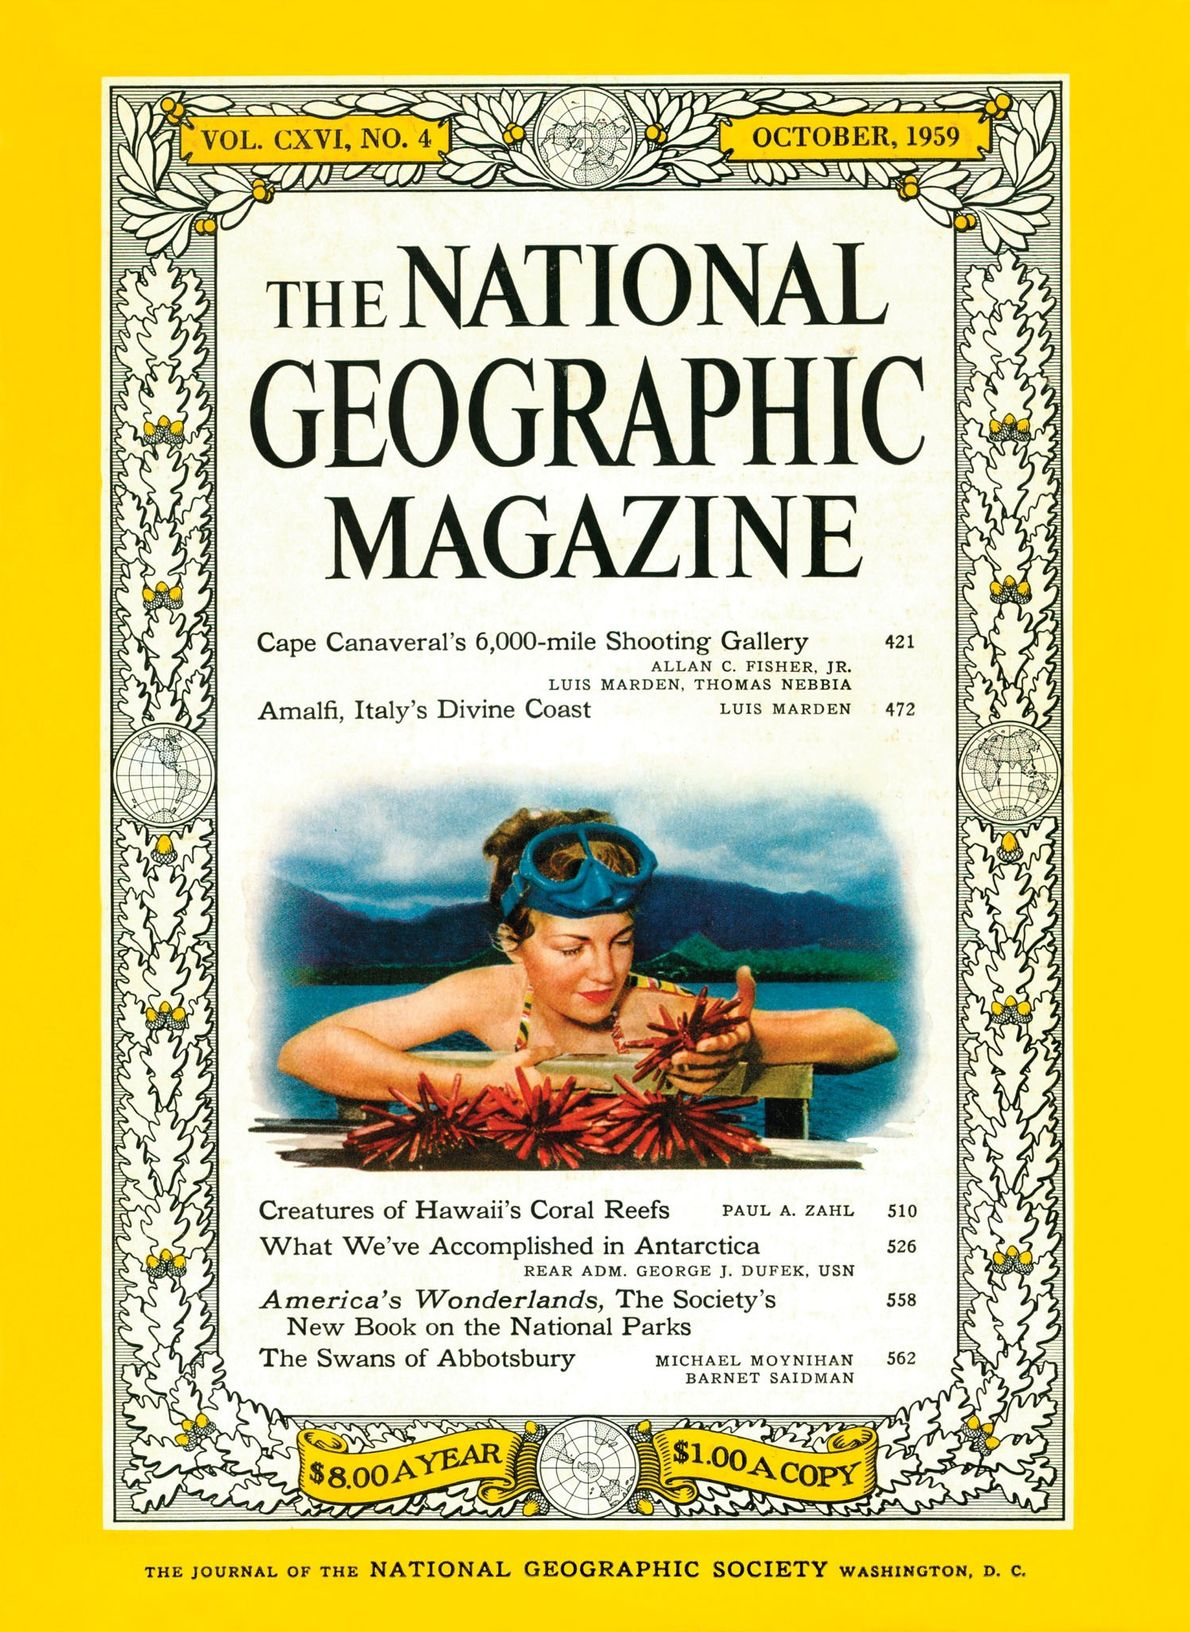 The first woman on the cover was Eda Zahl, shown gathering sea urchins.